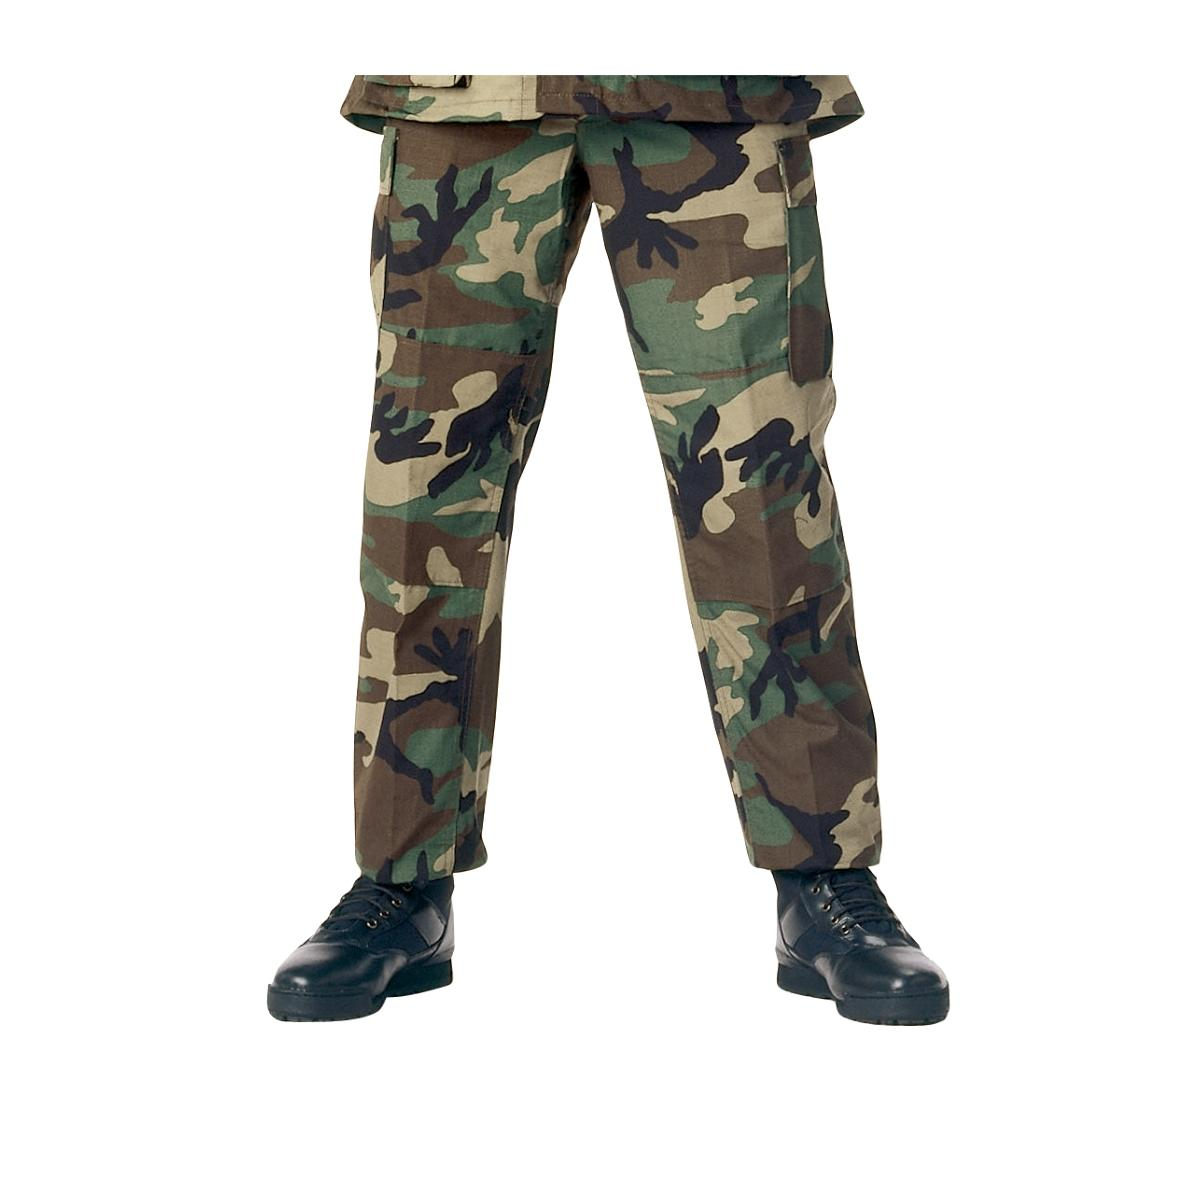 Woodland Camo BDU Pants, Military Fatigues by Rothco